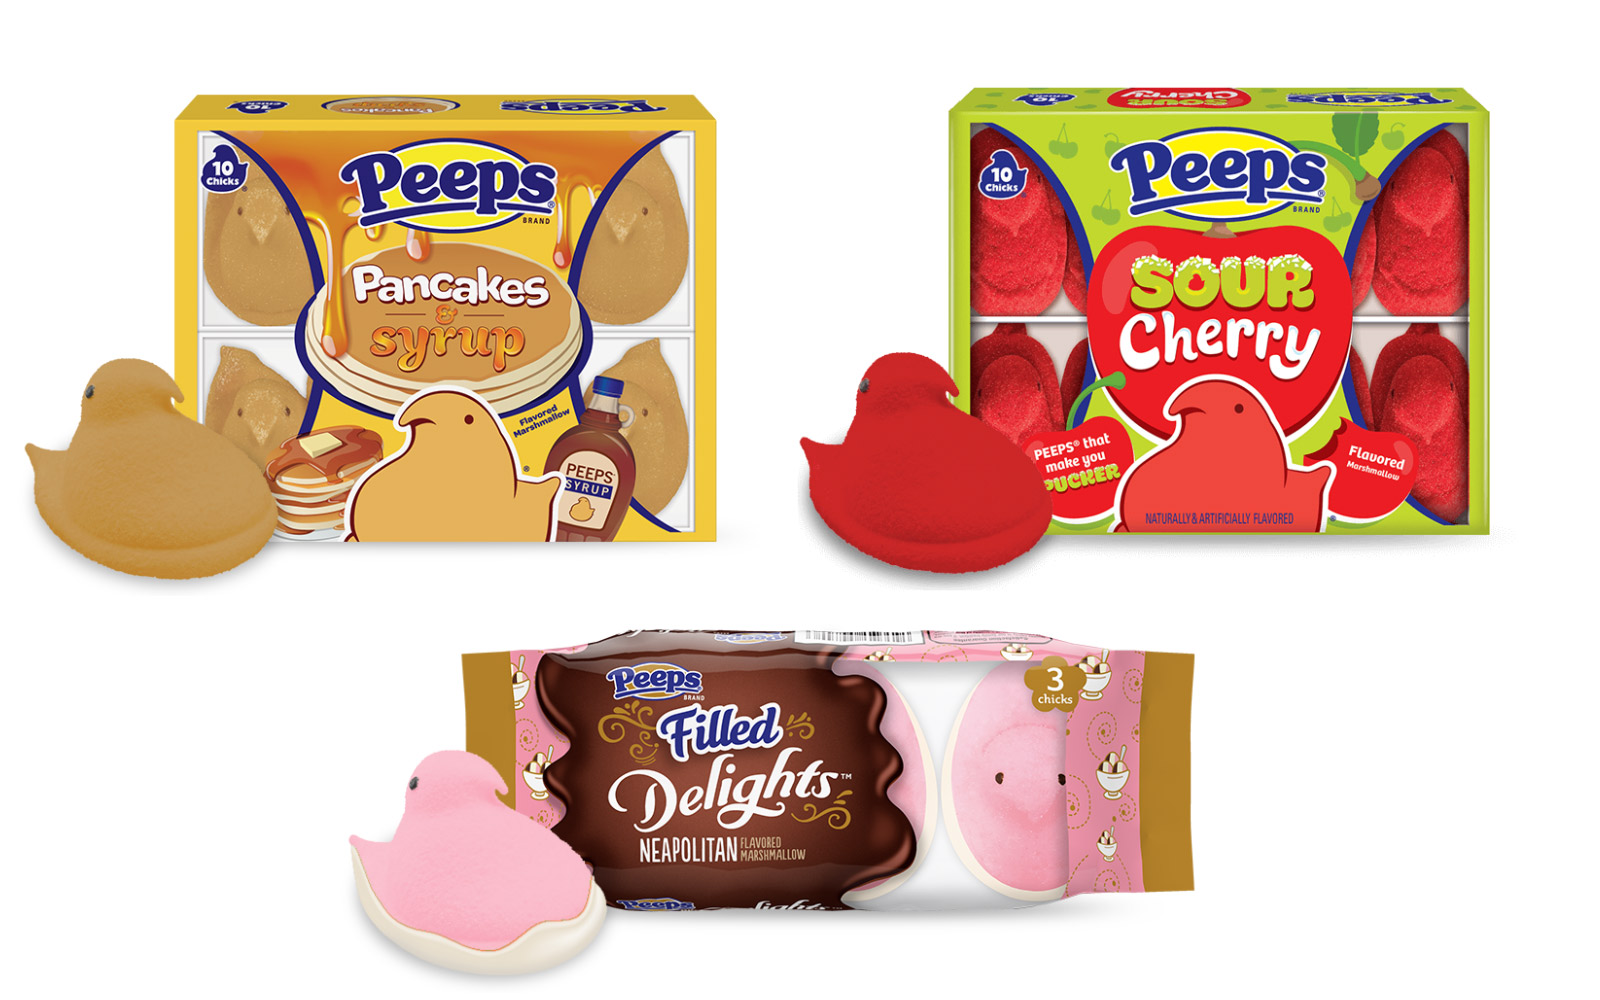 Peeps Unique New Flavors Include Pancakes & Syrup and Chocolate Dipped Lemon Sherbet